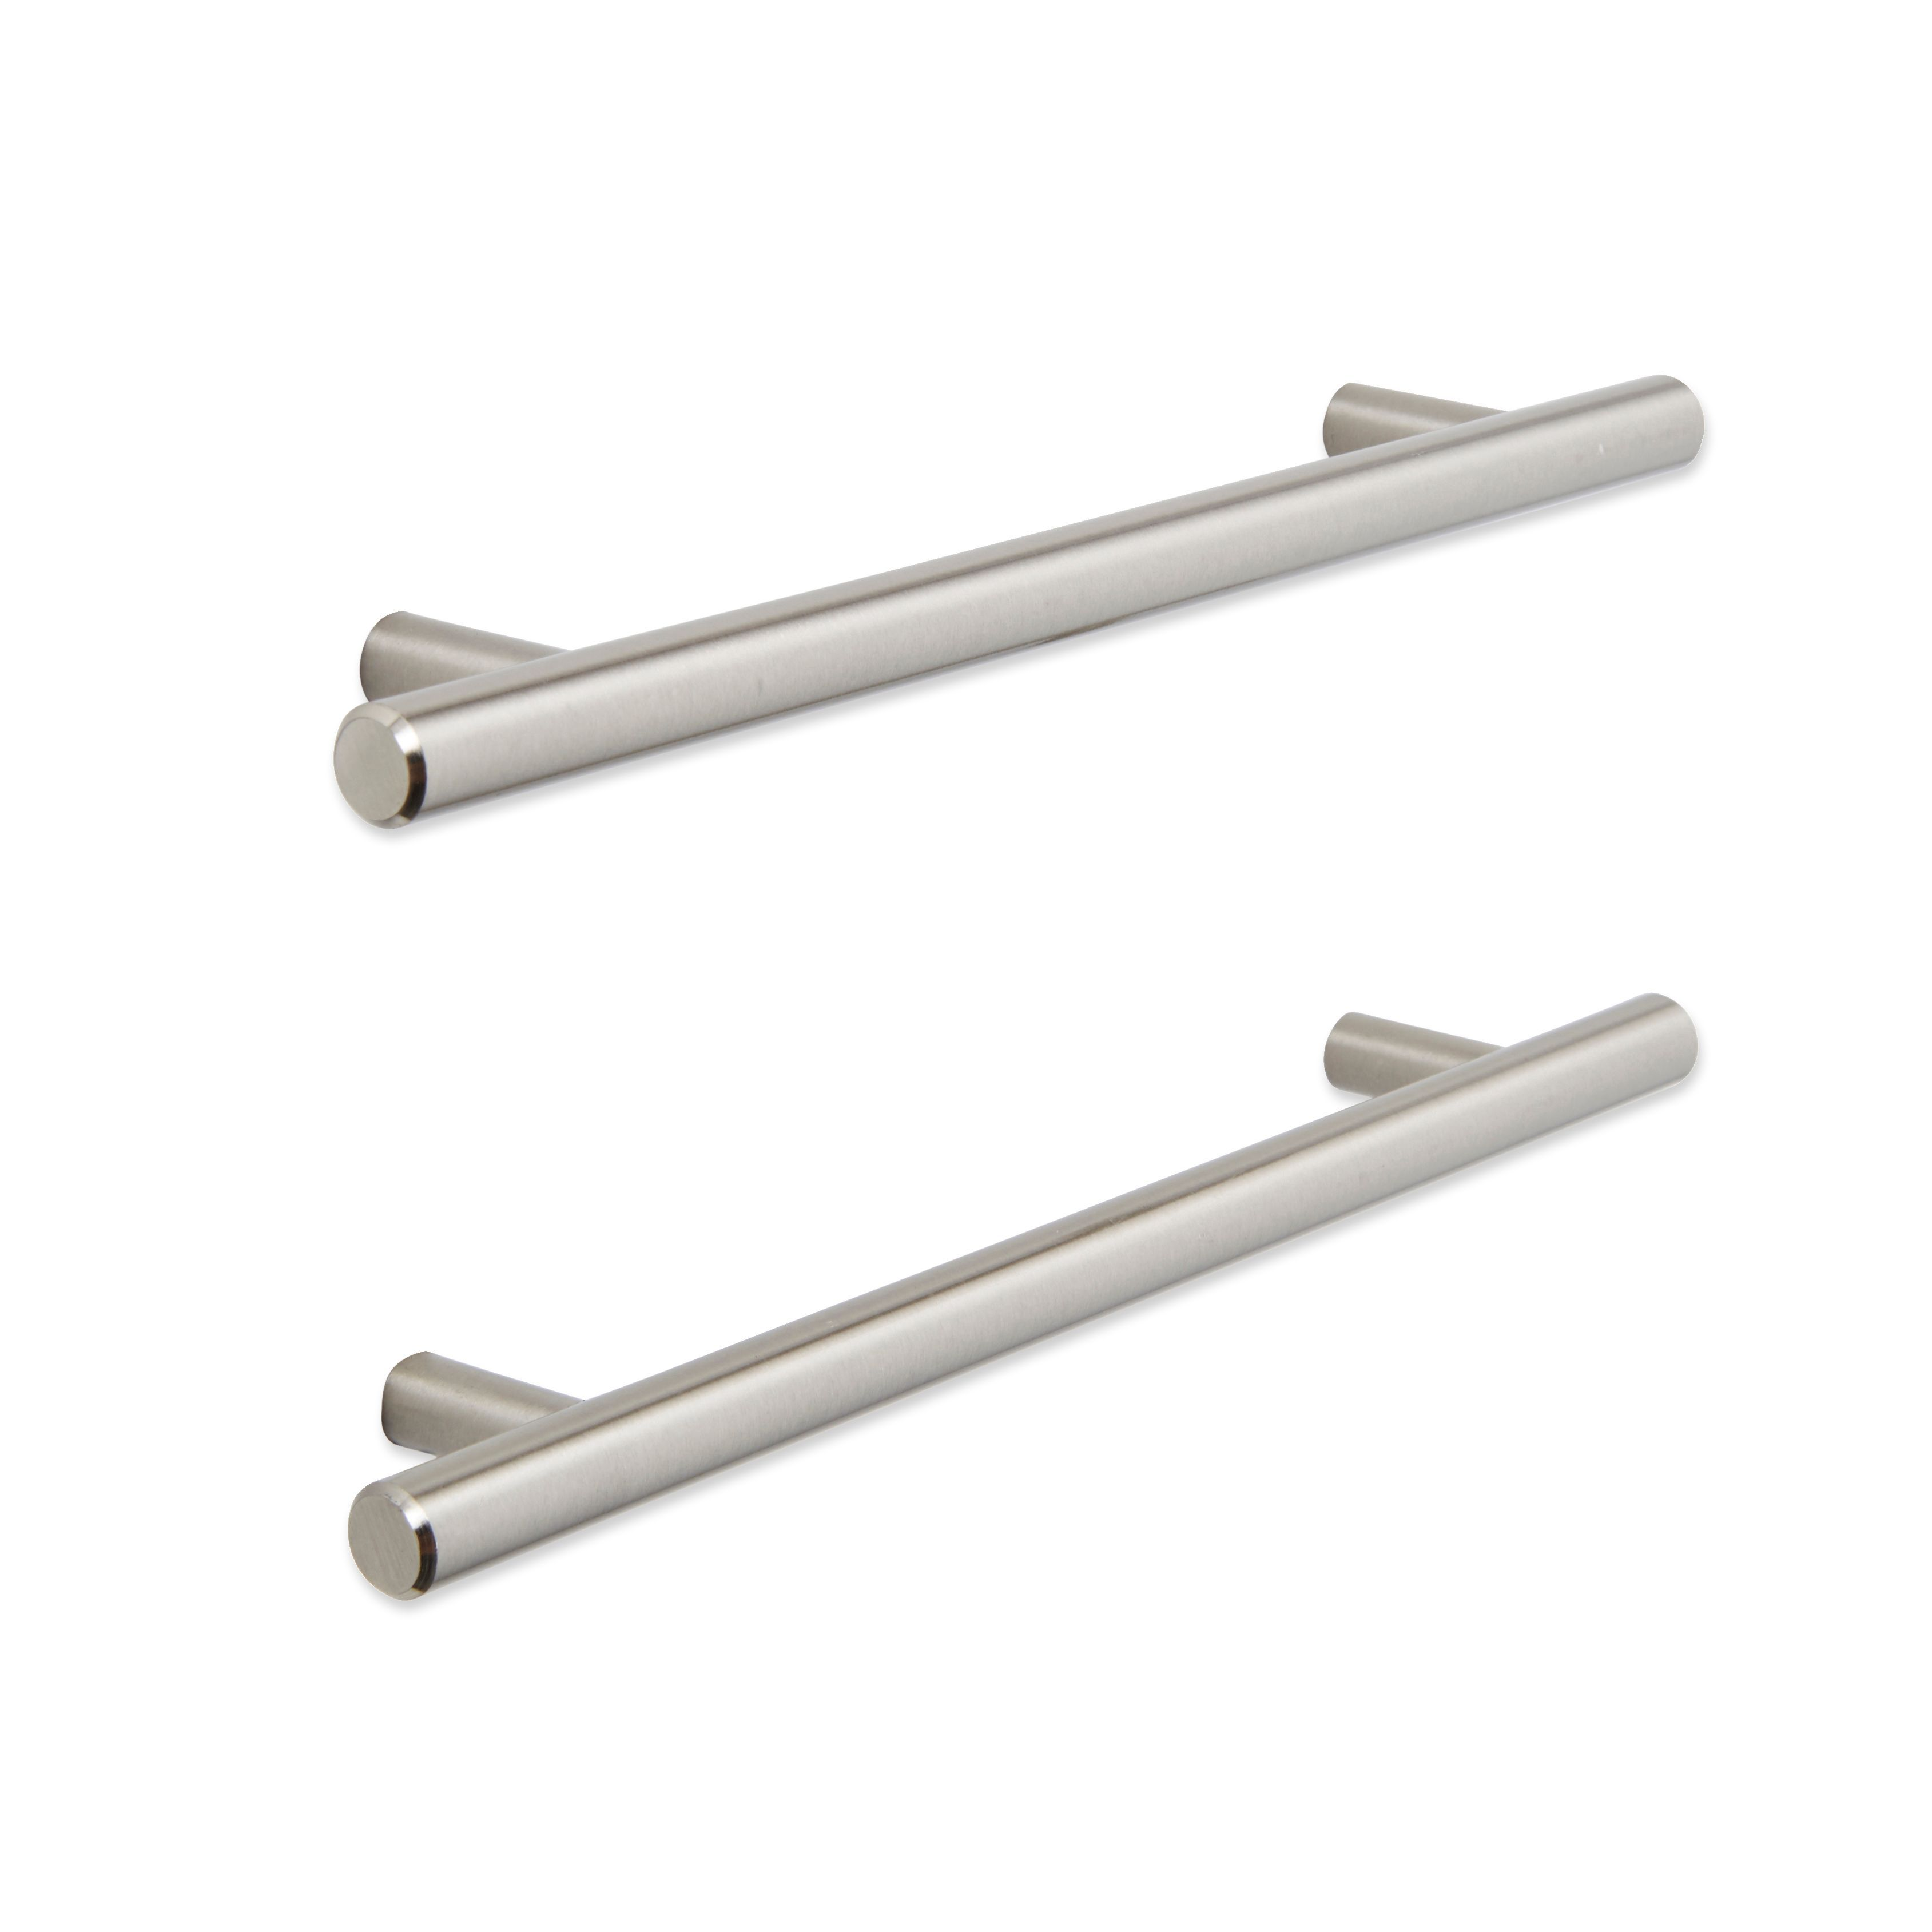 B&Q Brushed Nickel Effect Straight Furniture Handle, Pack of 2 ...